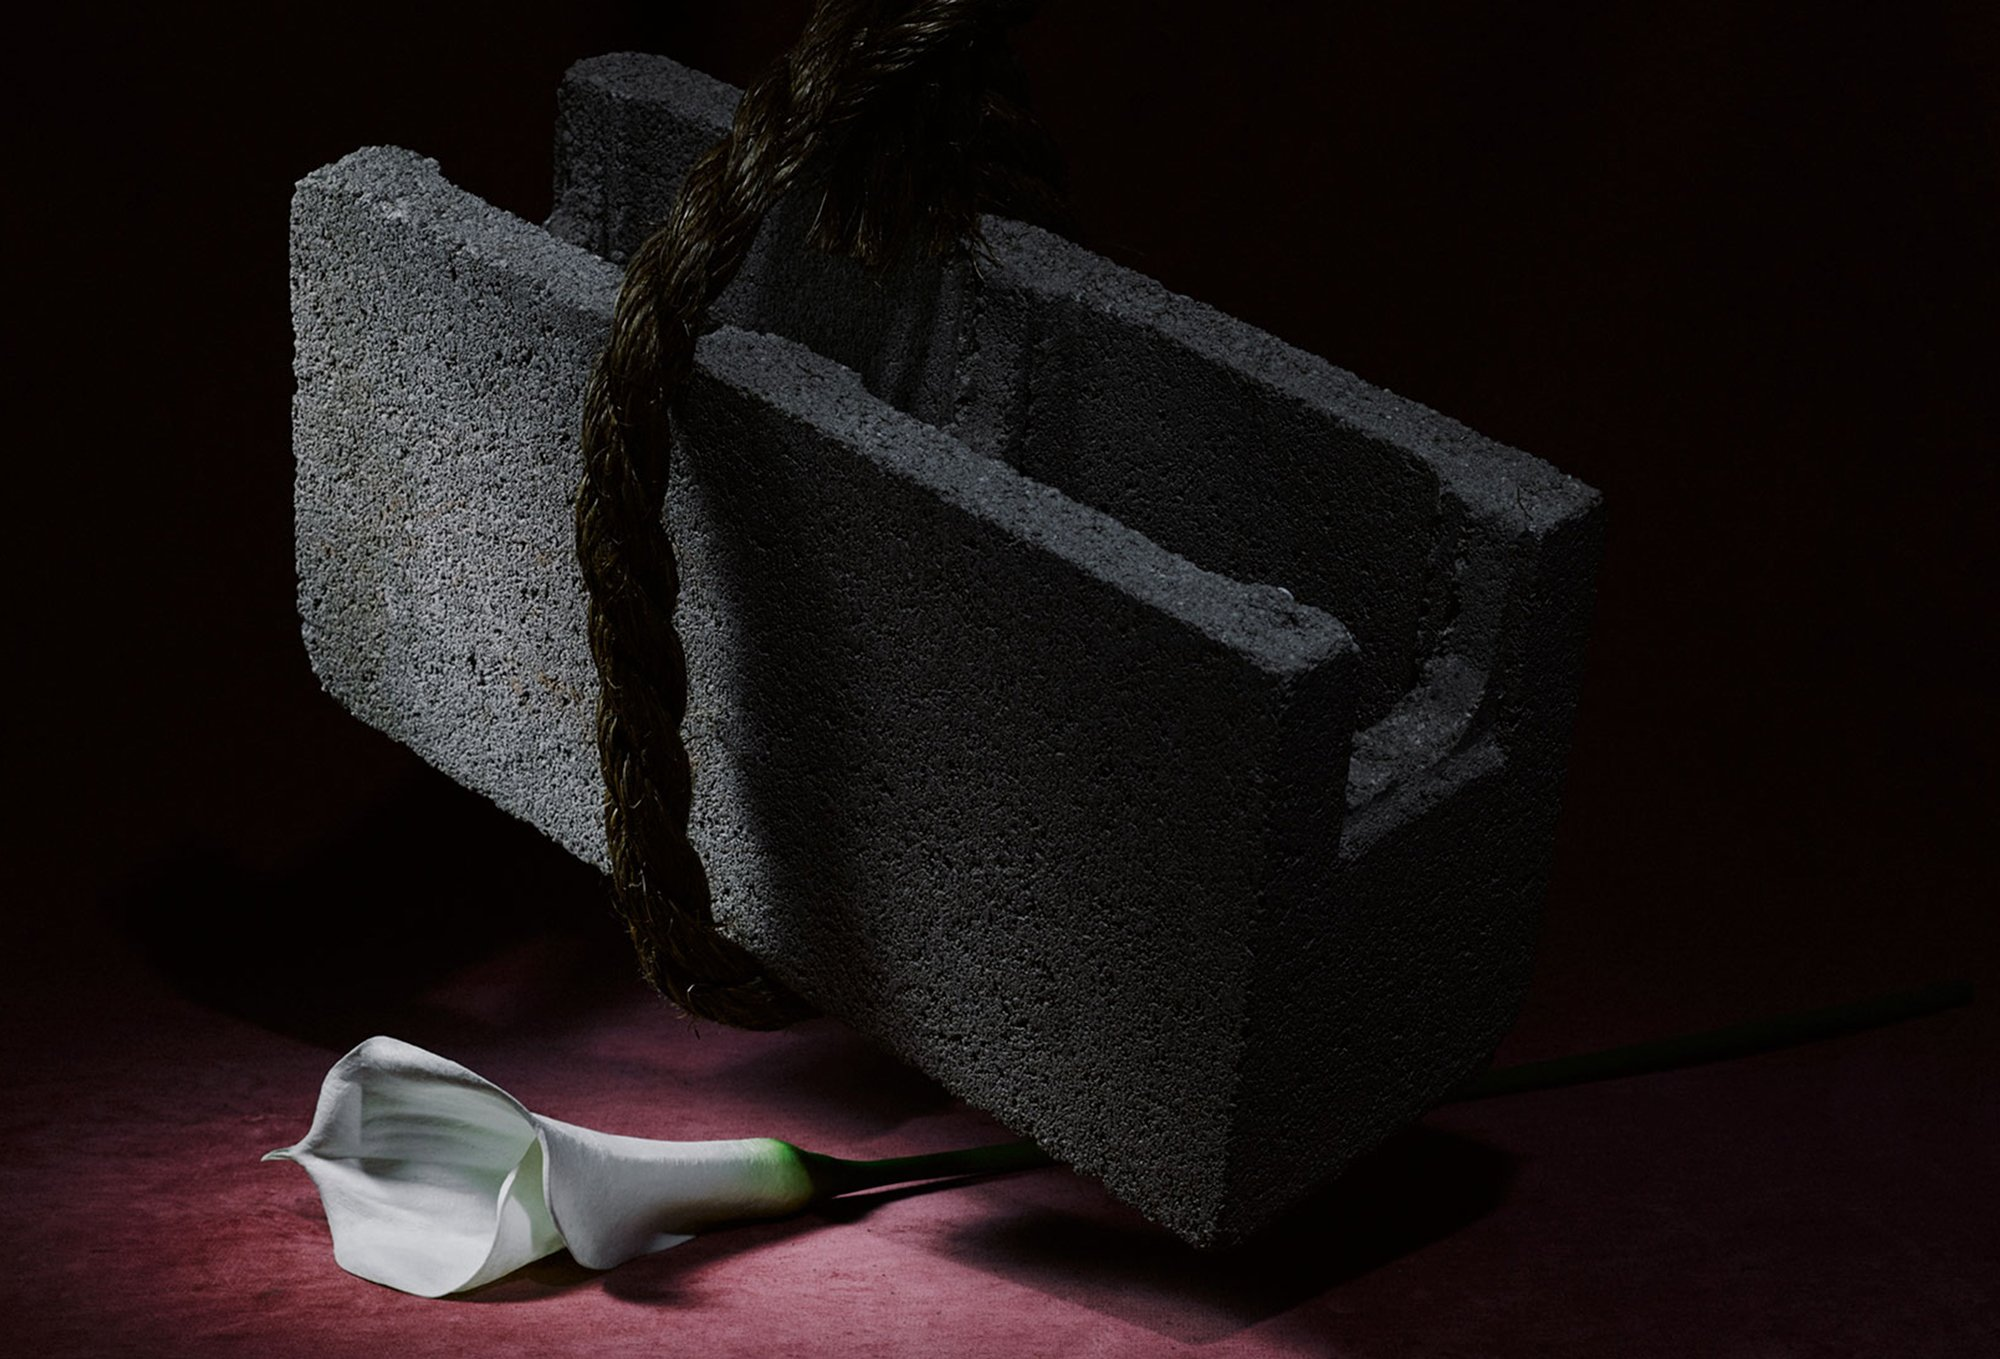 Still image of cinder block hanging over white calla lily flower for Romance Journal Issue 02 Resistance. Publication design, art direction, print design by RoAndCo.